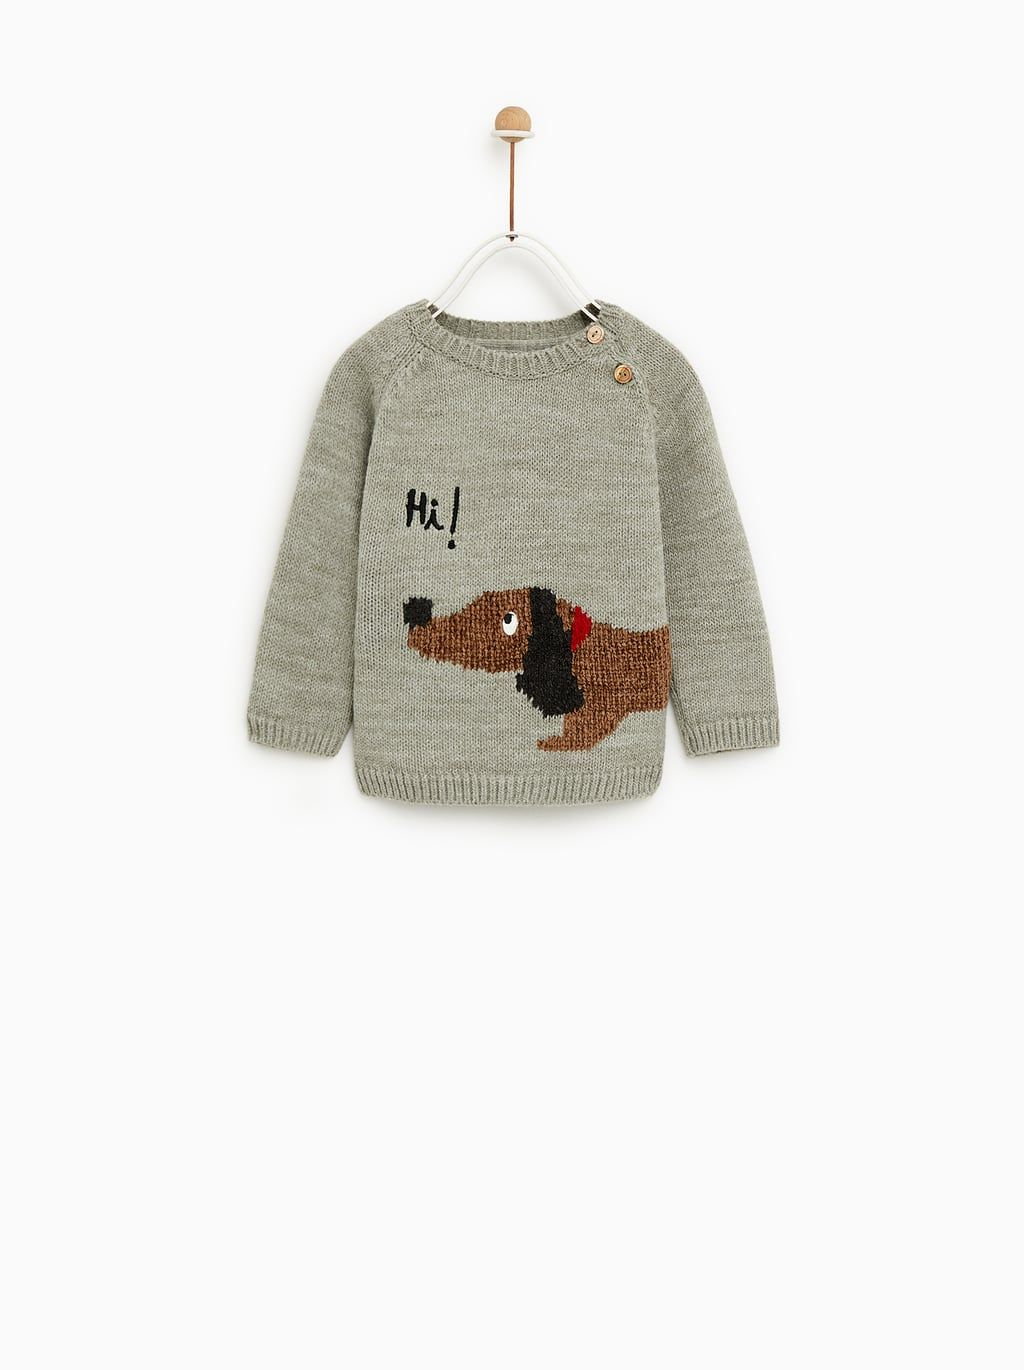 JERSEY PERRO | Shopping fall | Dog sweaters, Baby y Gifts For Kids